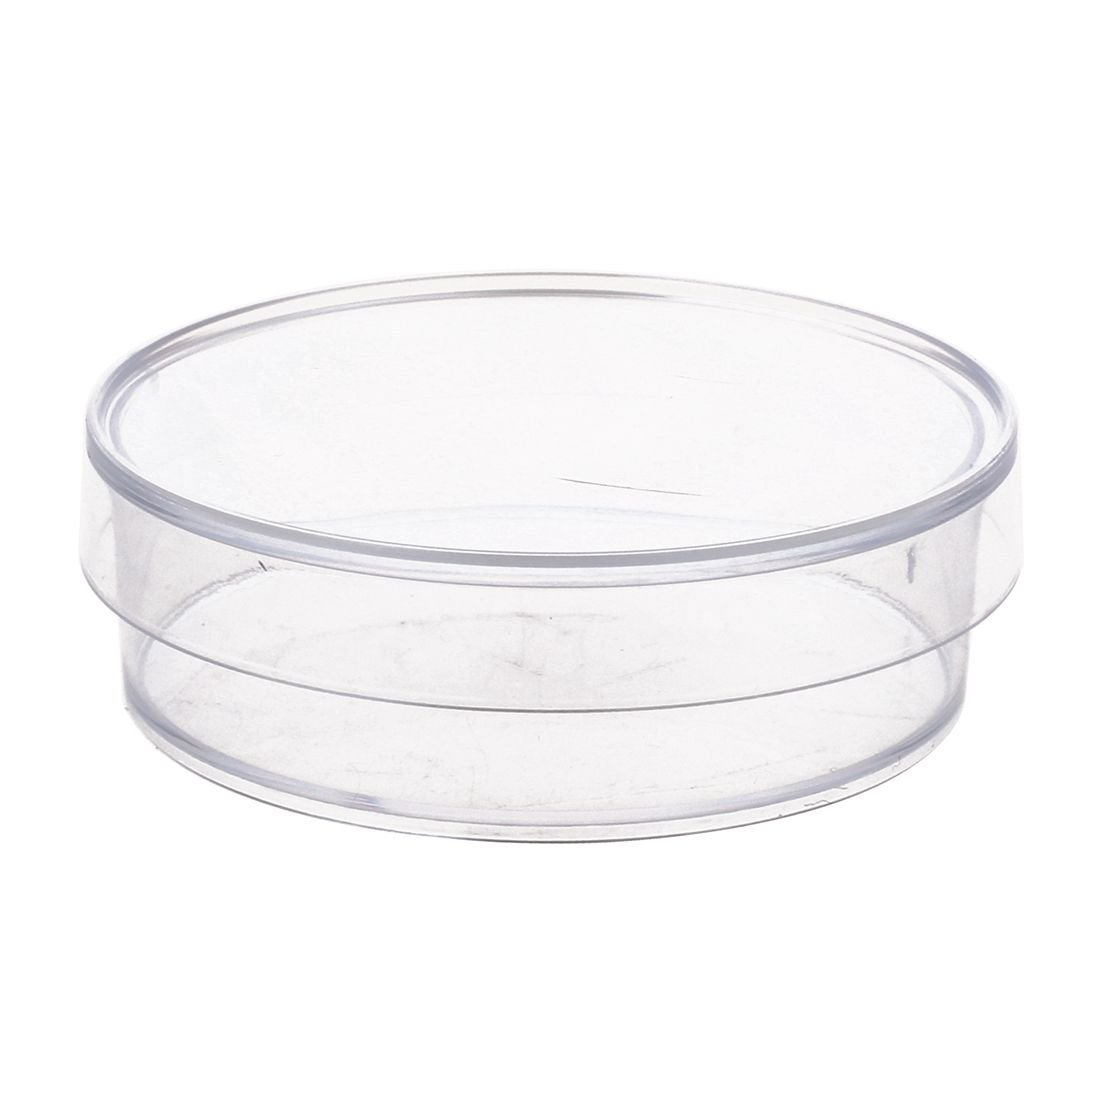 SNOWINSPRING 10 pcs Transparent color 35mm x 10mm Sterile Plastic Petri Dishes with Lid for LB Plate Yeast